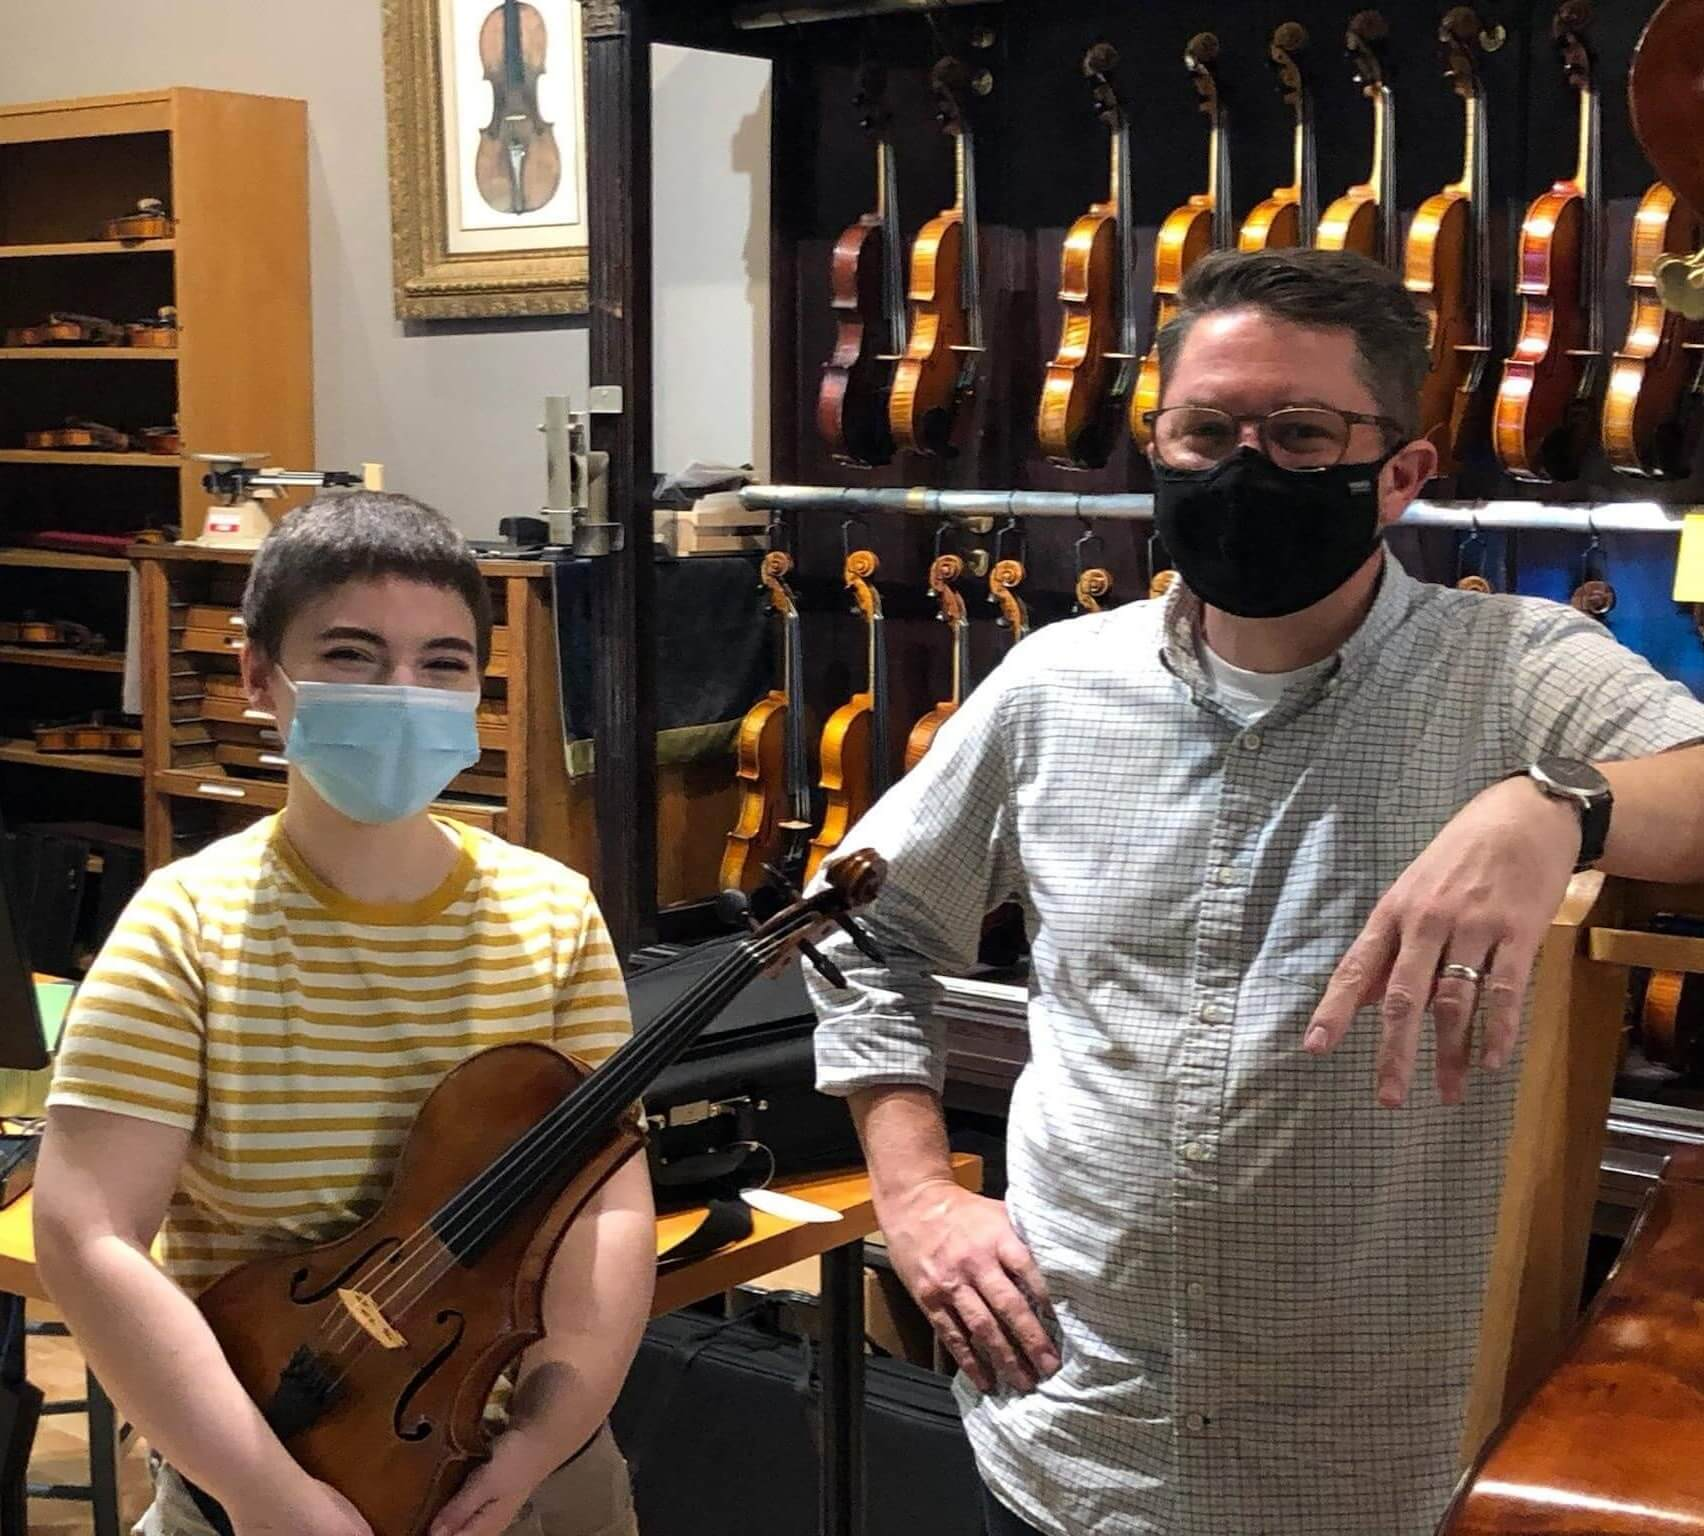 customer receiving custom designed adapted viola from luthier Noah Scott